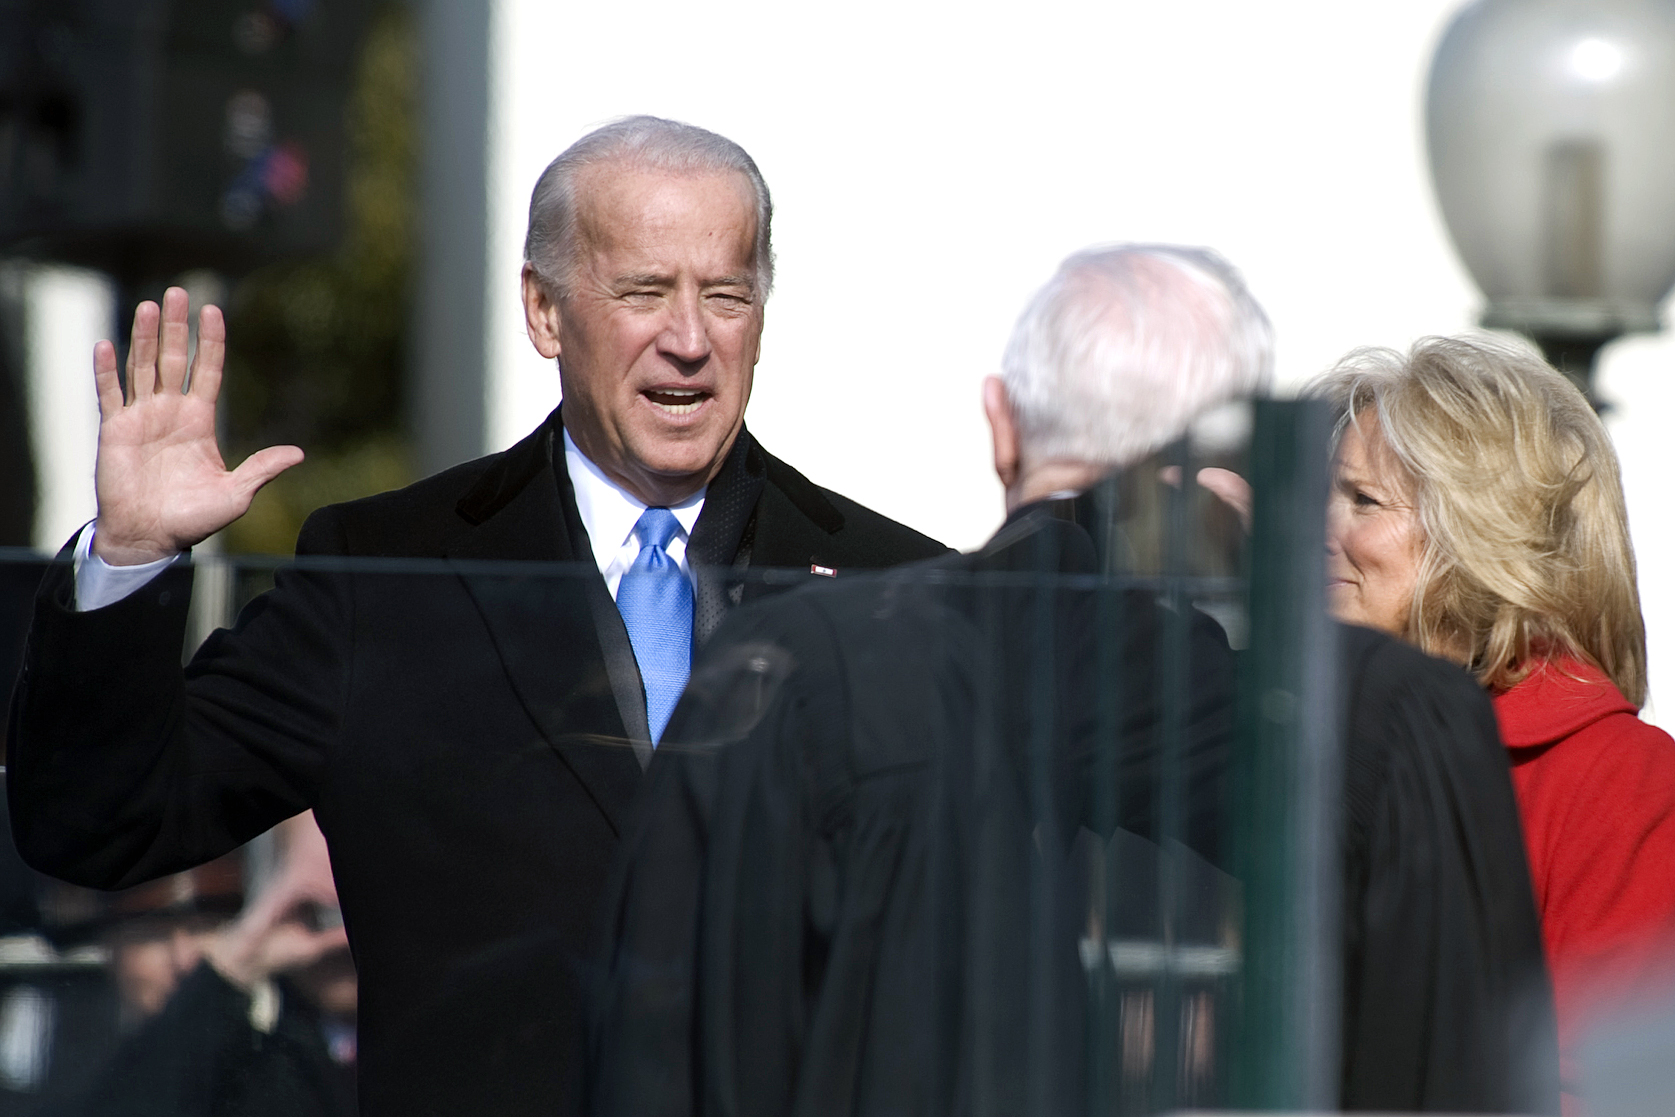 Pennsylvania Seeking Medical Supplies From Hospital Driven Into Financial Ruin by Venture Linked to Biden's Brother